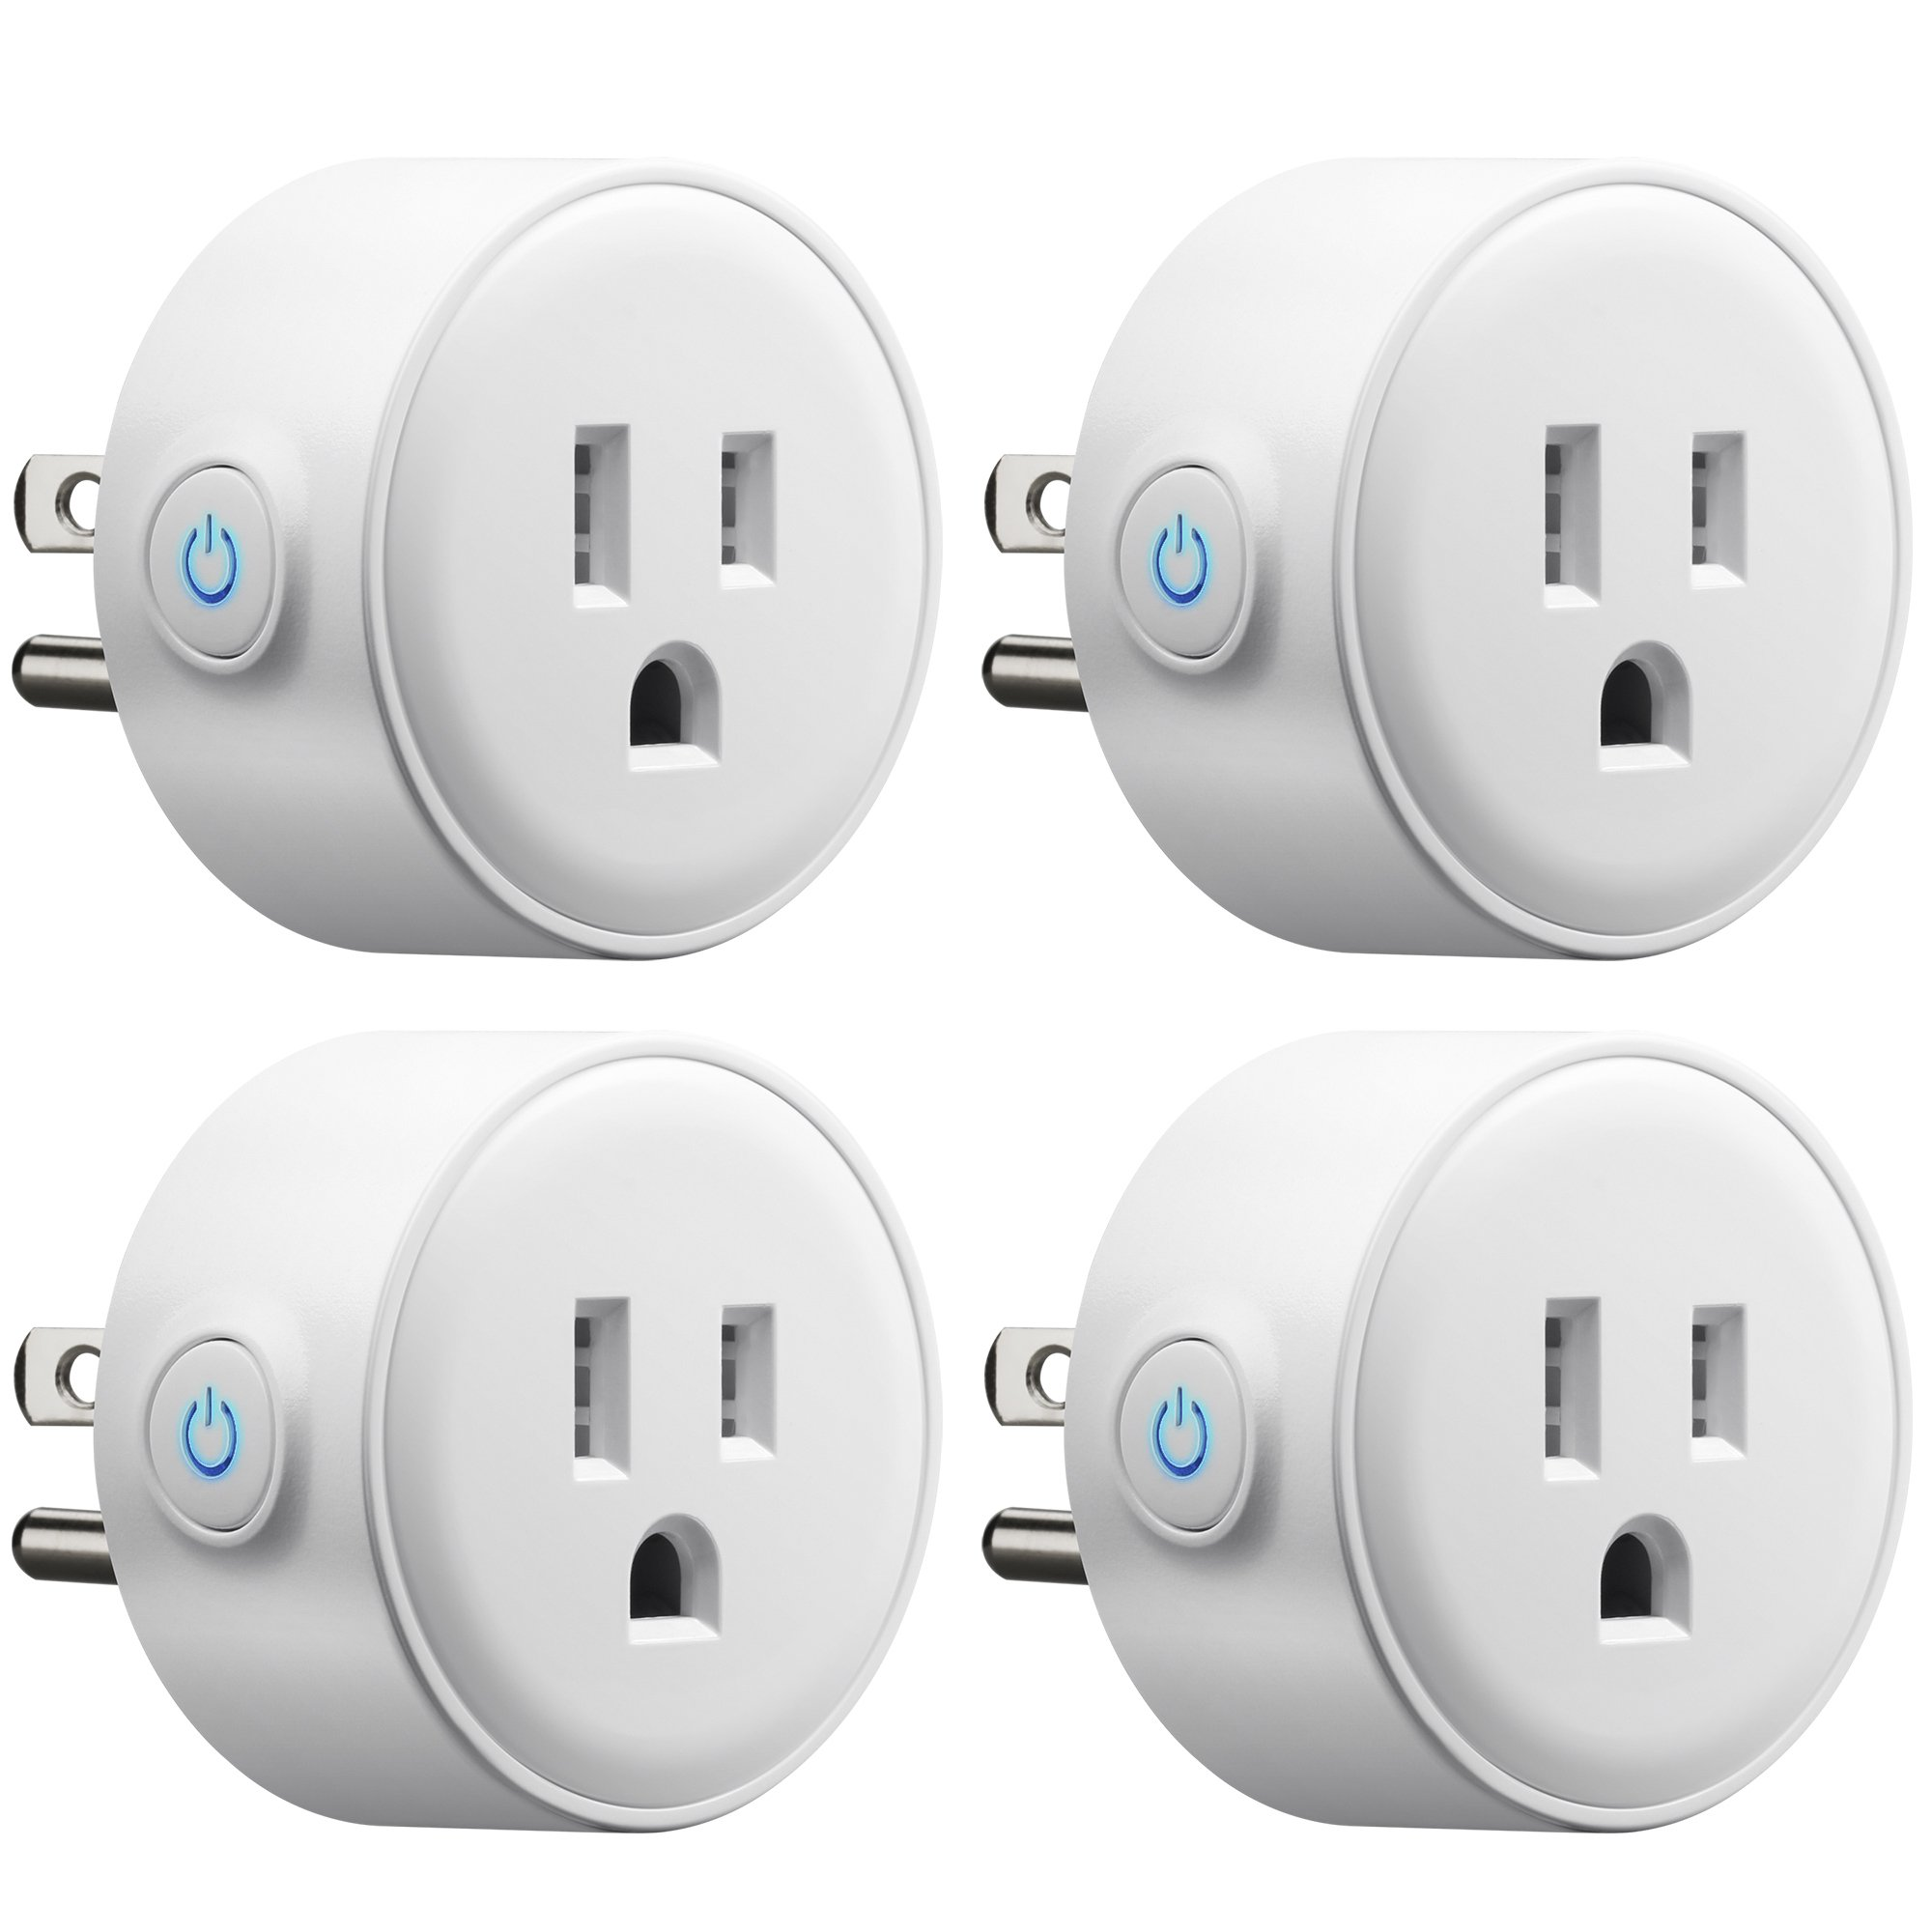 GMYLE 4 Pack Wifi Smart Plug Mini Outlet Power Control Socket, Remote Control Your Electric Devices from Anywhere, No Hub Required, Work with Amazon Alexa Echo Dot & Google Home, White by GMYLE